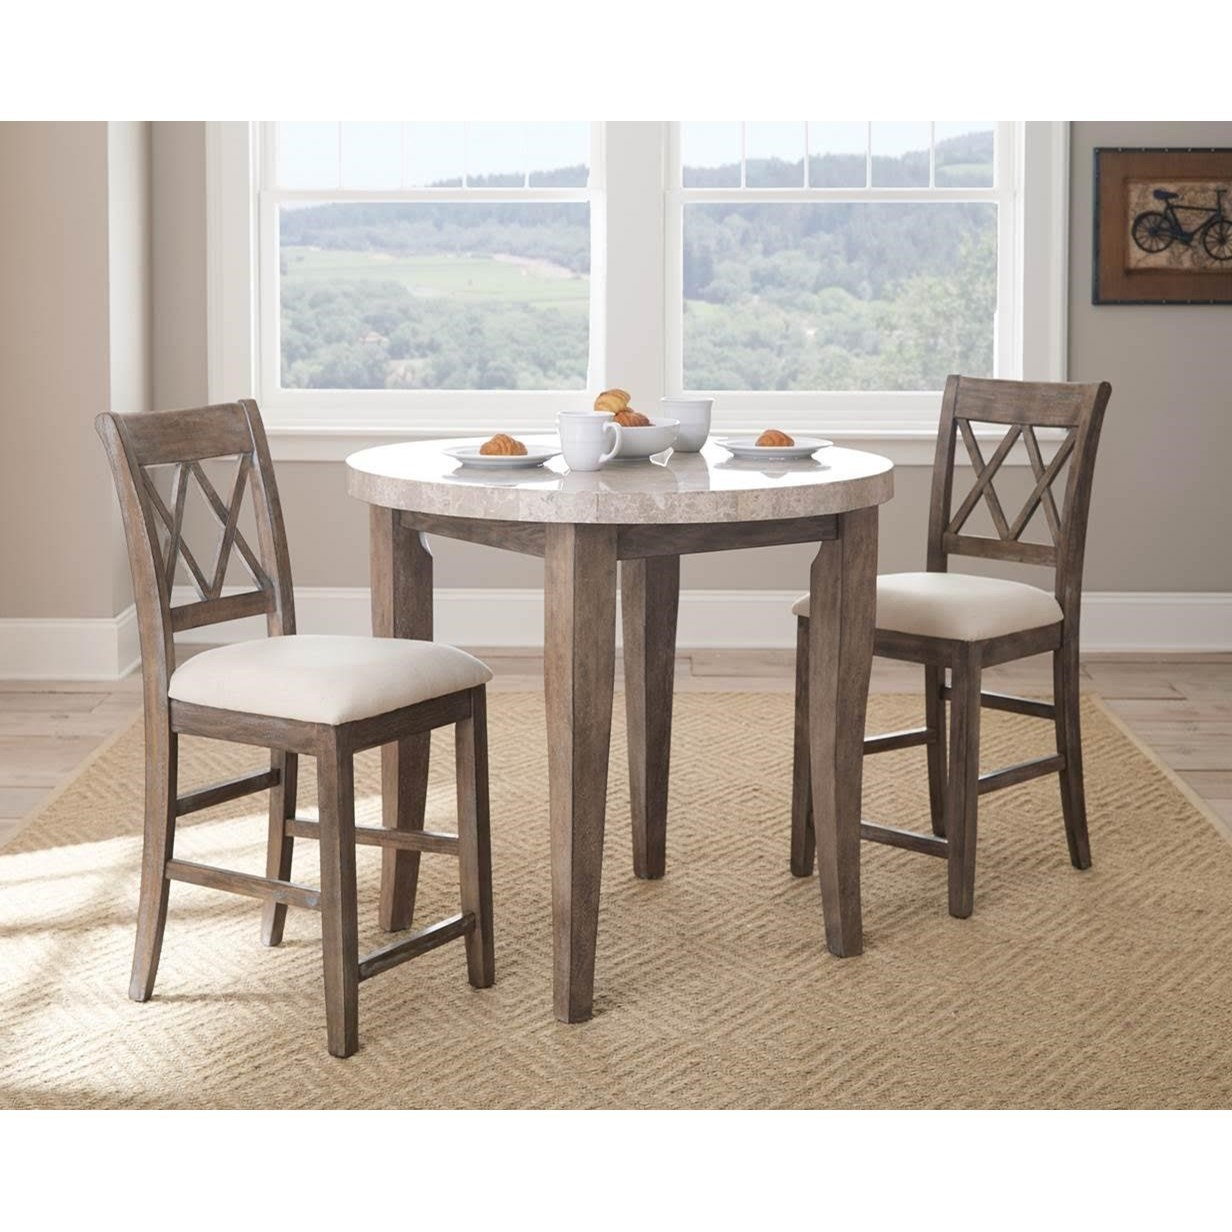 Steve Silver Franco 3 Piece Marble Counter Height Dining Set